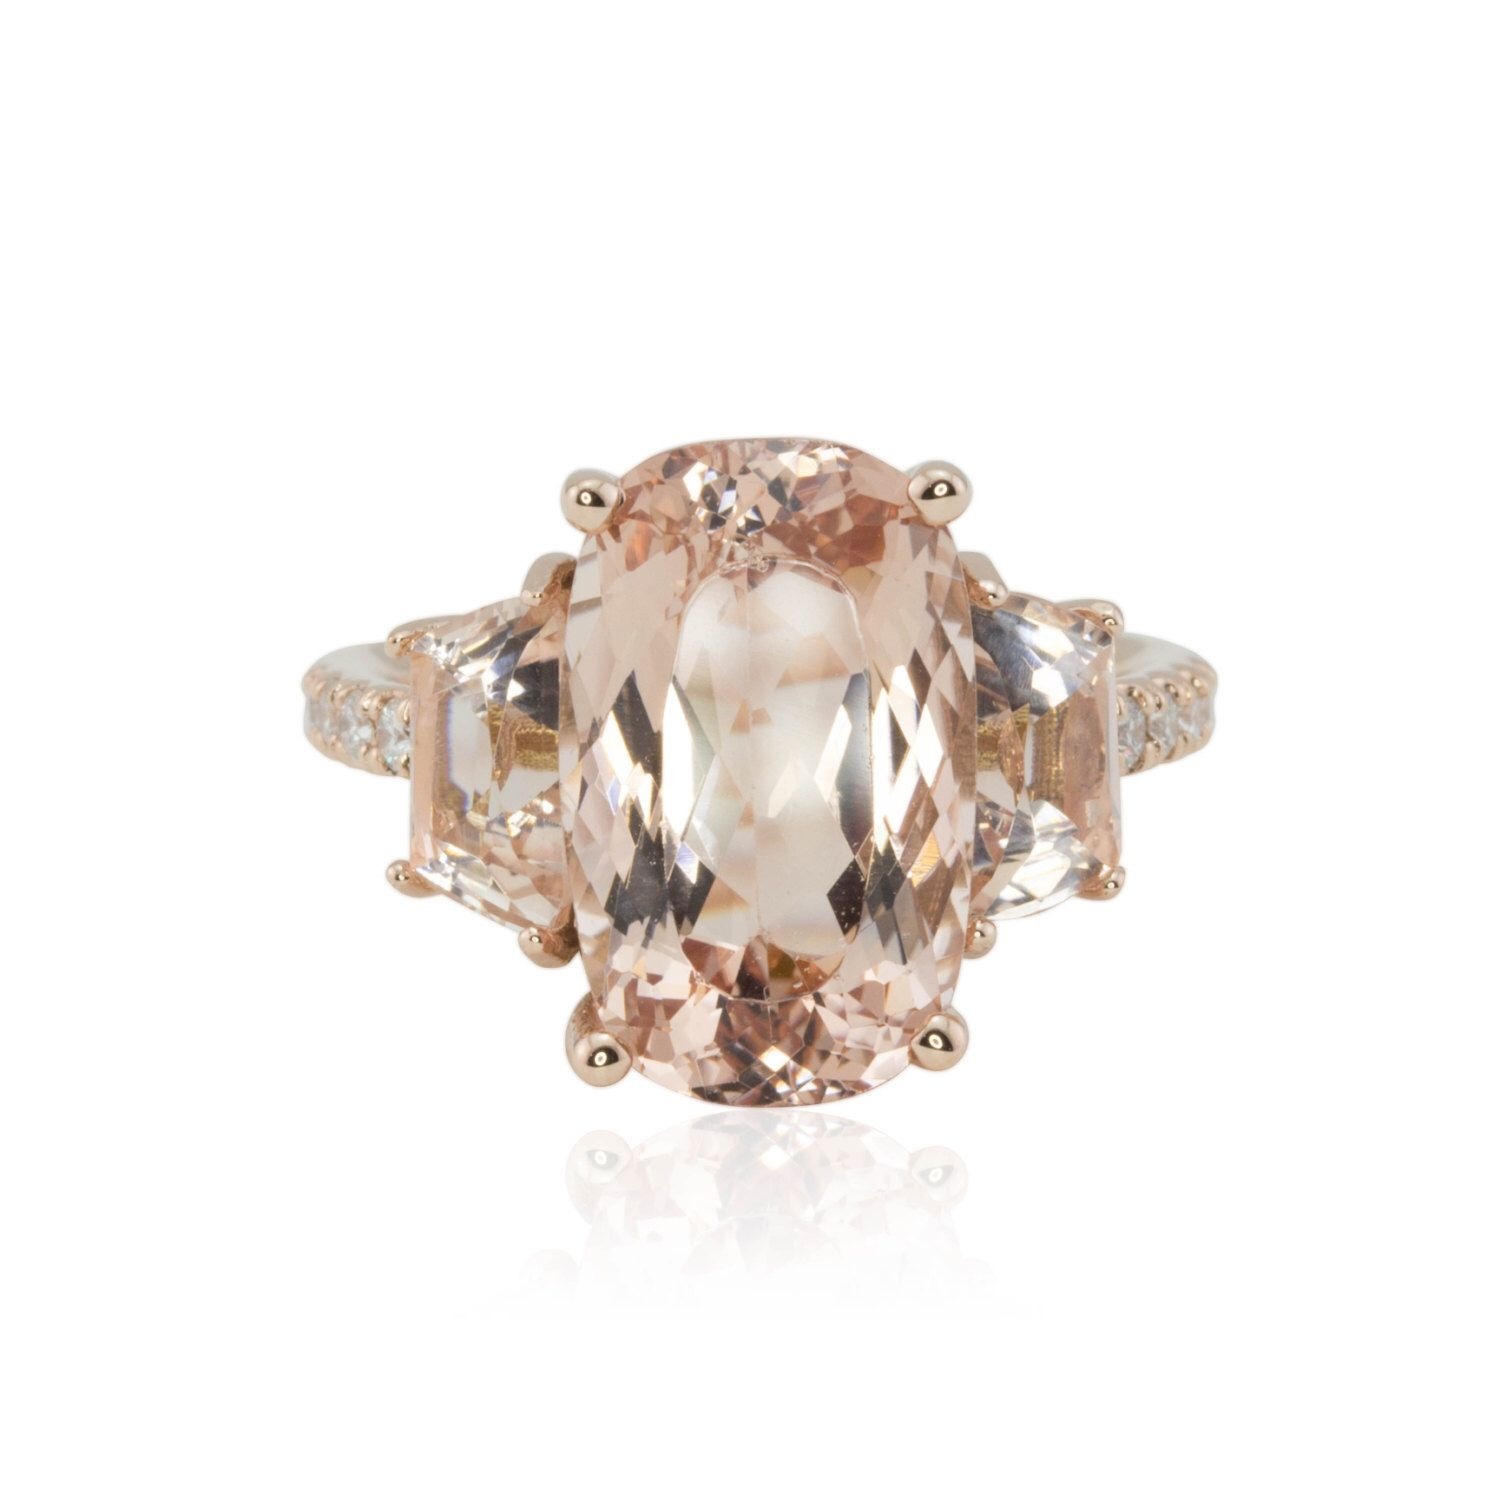 Morganite Ring Hand Cut Three Stone Oval and Trapezoid Peach